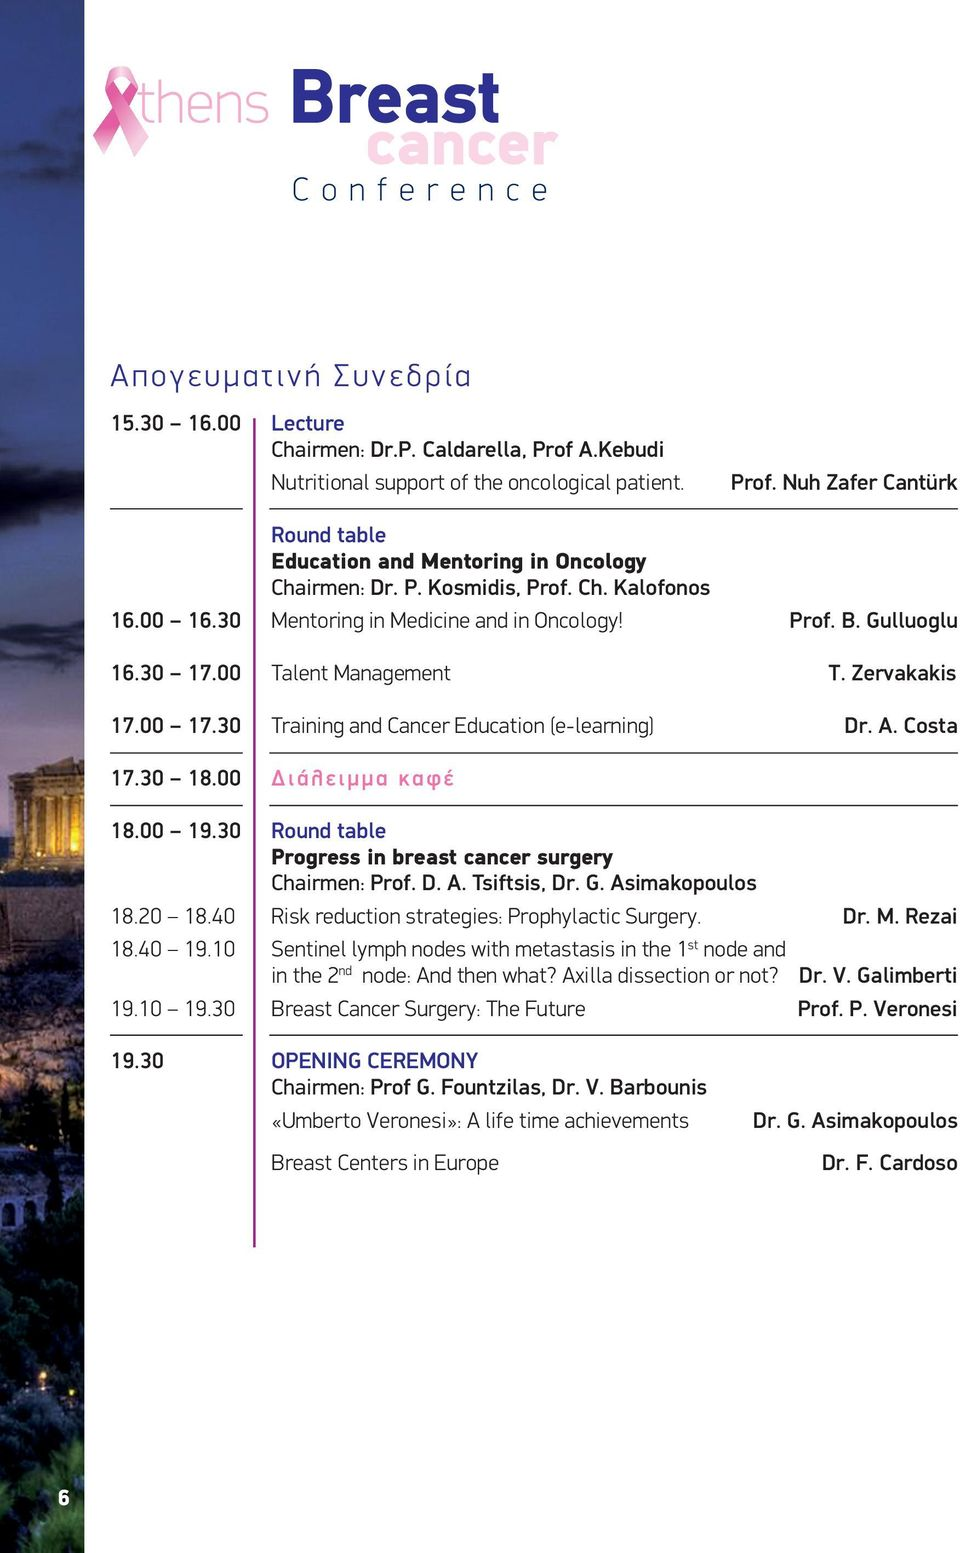 30 Training and Cancer Education (e-learning) Dr. A. Costa 17.30 18.00 Διάλειμμα καφέ 18.00 19.30 Round table Progress in breast surgery Chairmen: Prof. D. A. Tsiftsis, Dr. G. Asimakopoulos 18.20 18.